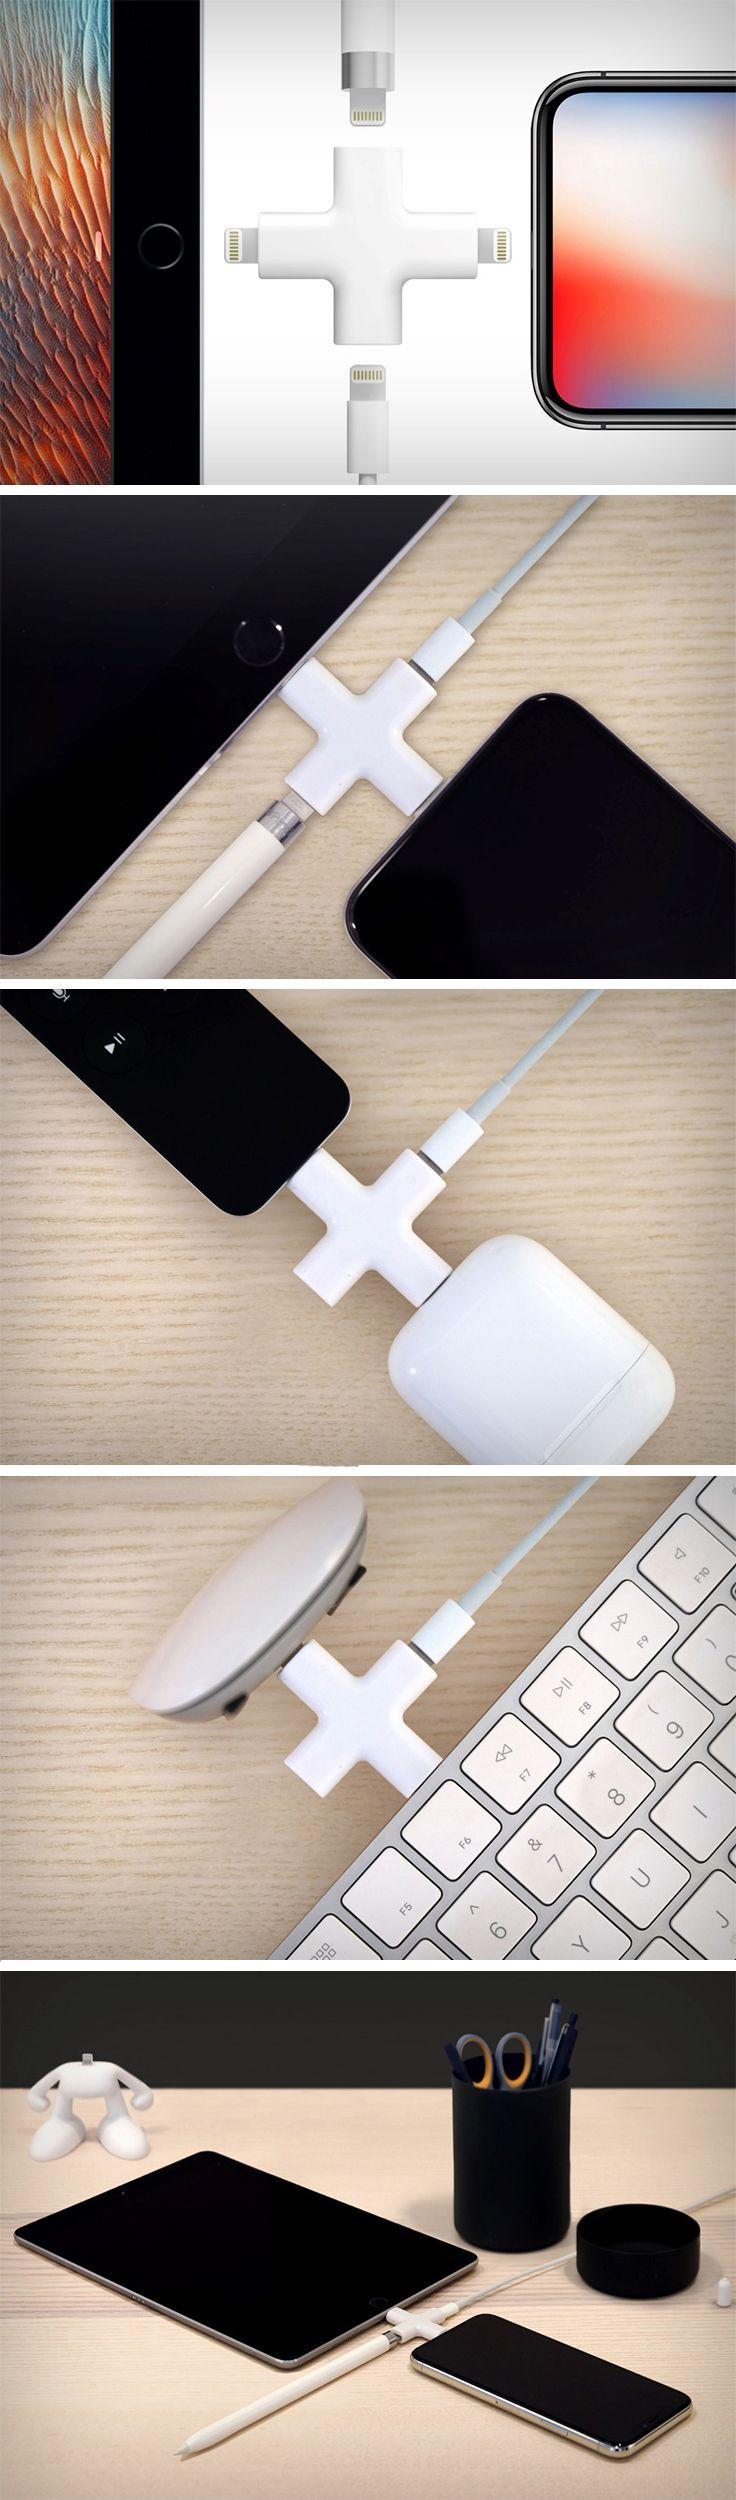 In the rare moment that you want to charge both your iPad Pro and your Apple Pencil at the same time, or your iPhone as well as your iPad and your Airpods, you'll thank the gods for giving you something like the Node. It saves you the need to find separate USB ports or plug-points. A single Node can be plugged into any two devices with the lightning port (your iPhone/Airpods/iPad/Magic-Mouse/Keyboard). BUY NOW! #iphoneairpods,